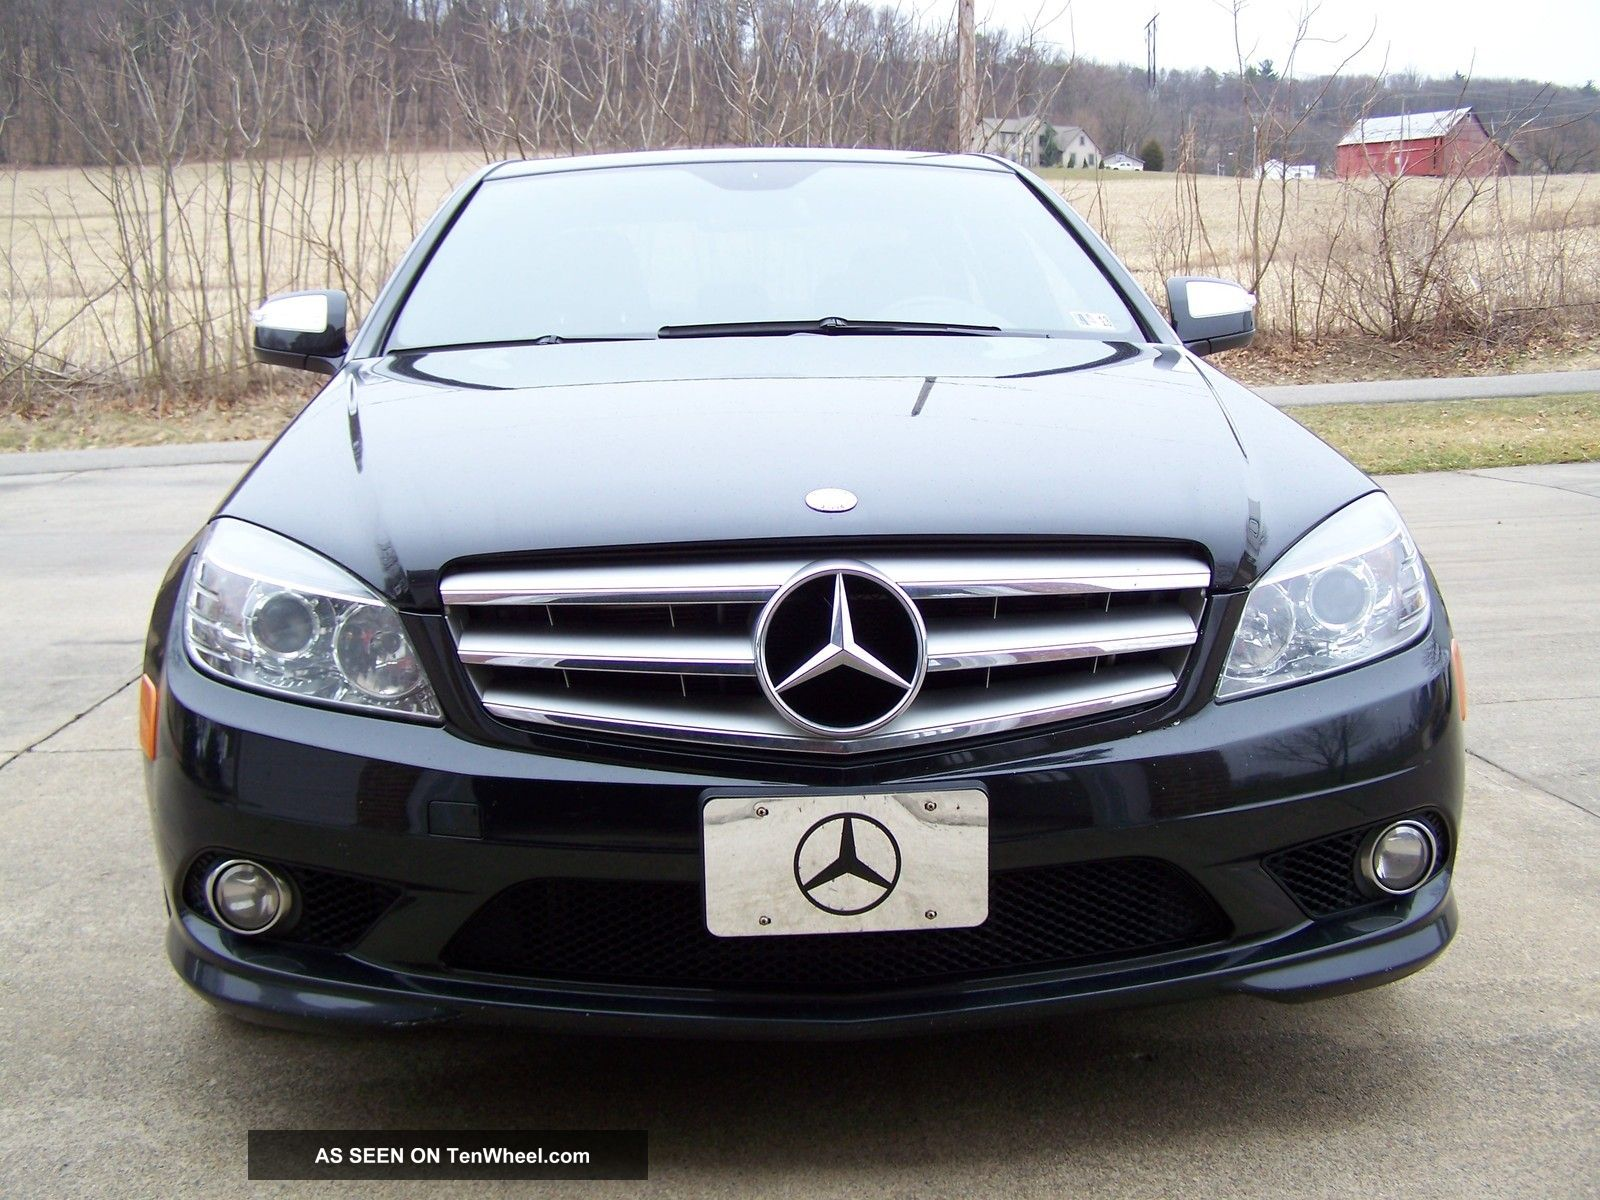 2008 mercedes benz c300 4matic sport sedan 4 door 3 0l for Mercedes benz c300 4matic 2012